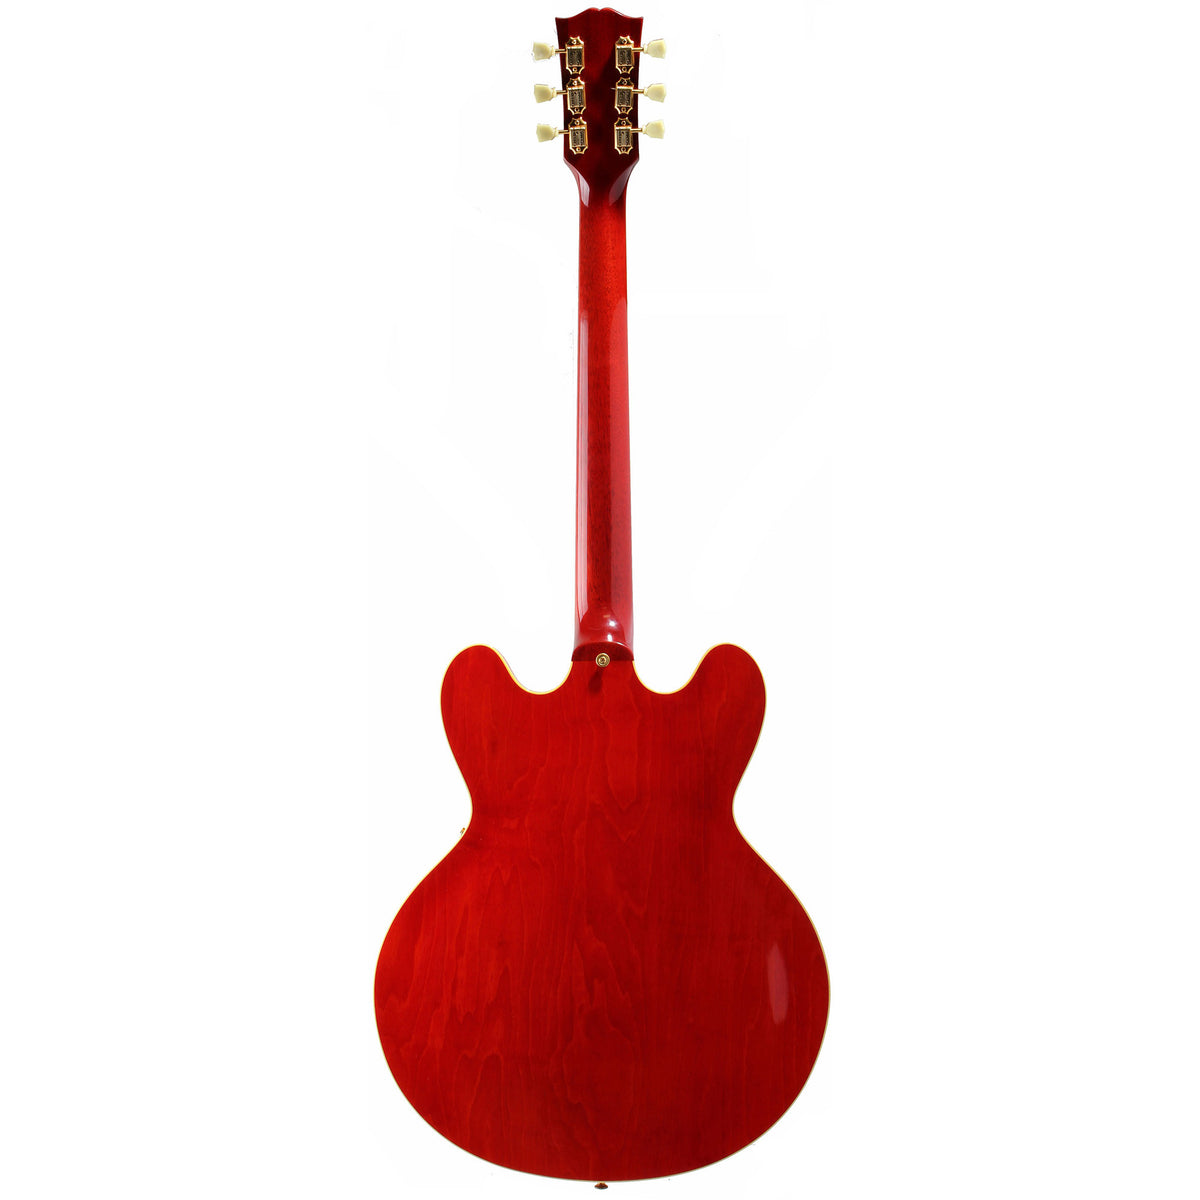 2000 GIbson Custom Shop ES-345 Mono, Cherry Red with Gold - Garrett Park Guitars  - 6